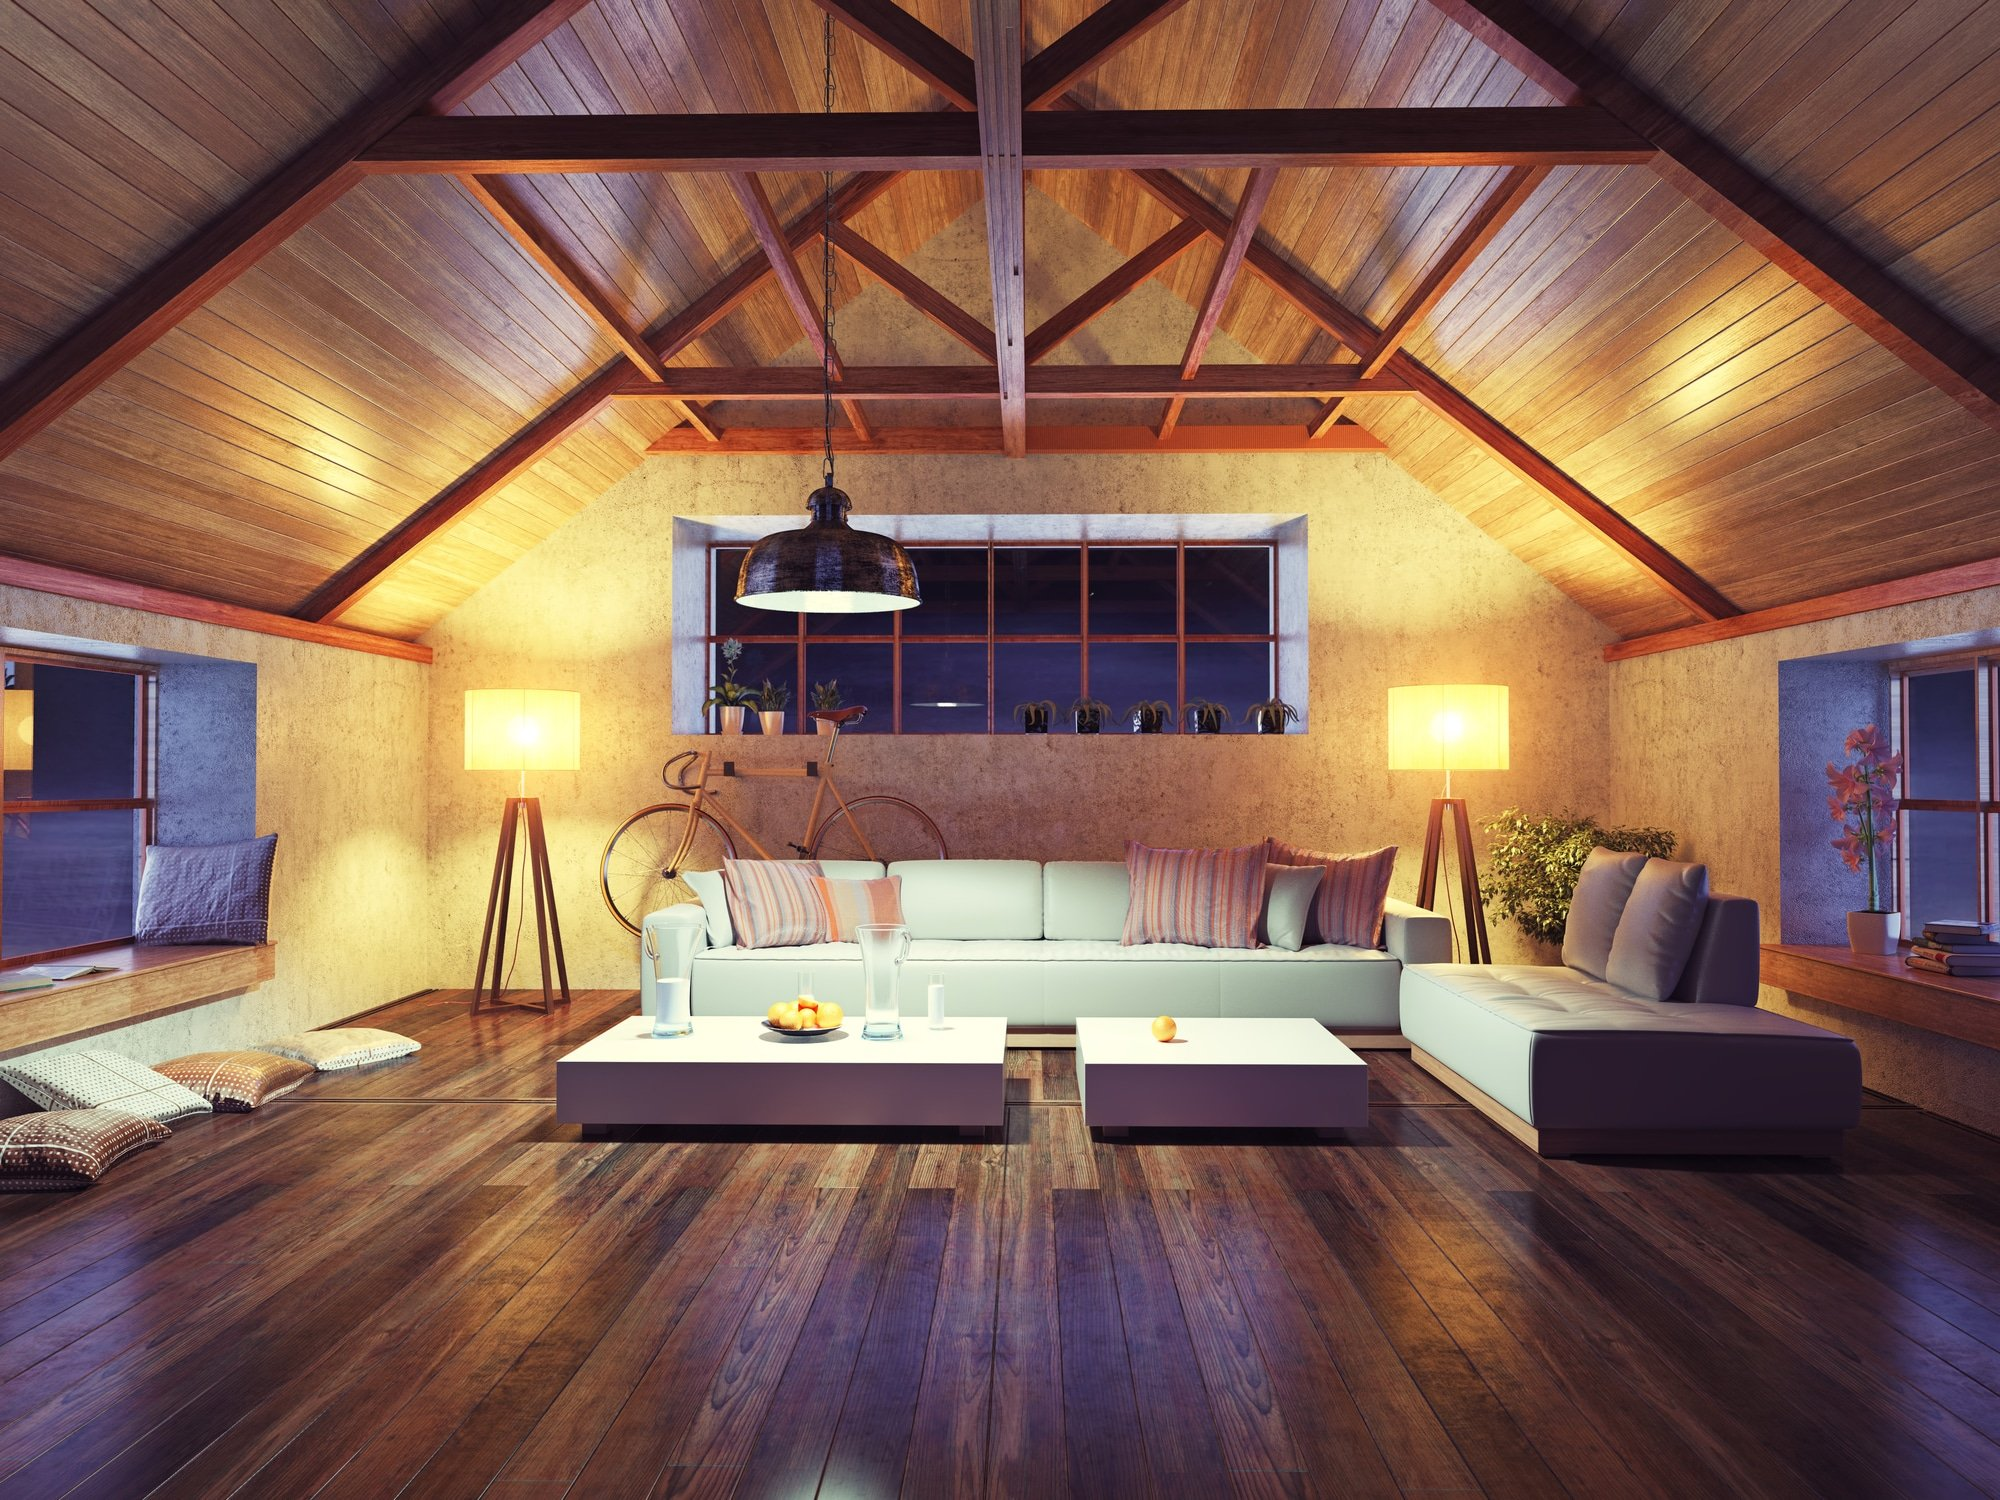 Helping You Convert Your Garage Or Attic To A Livable Space